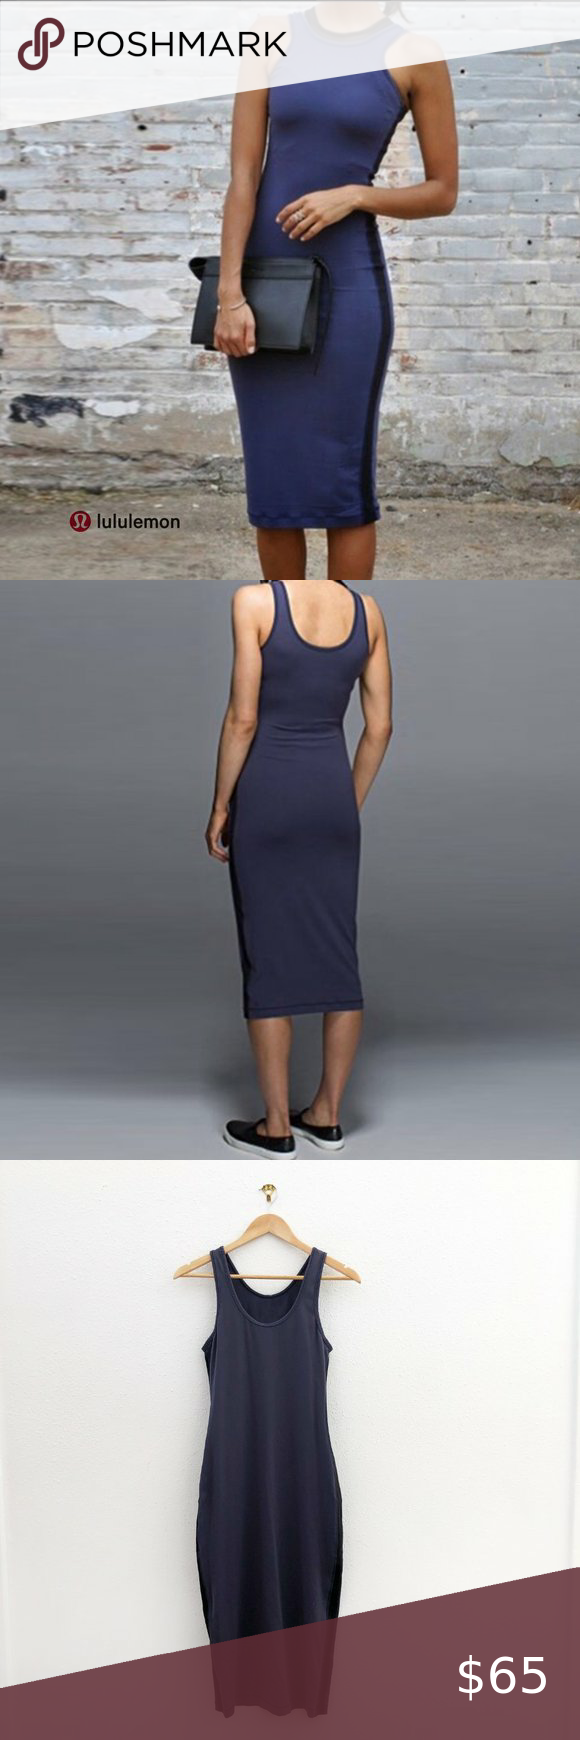 Lululemon Lab Noir Racerback Bodycon Dress Product Sweat Wicking Breathable And Four Way Stretch Perfect Layer Clothes Design Bodycon Dress Athletica Dress [ 1740 x 580 Pixel ]